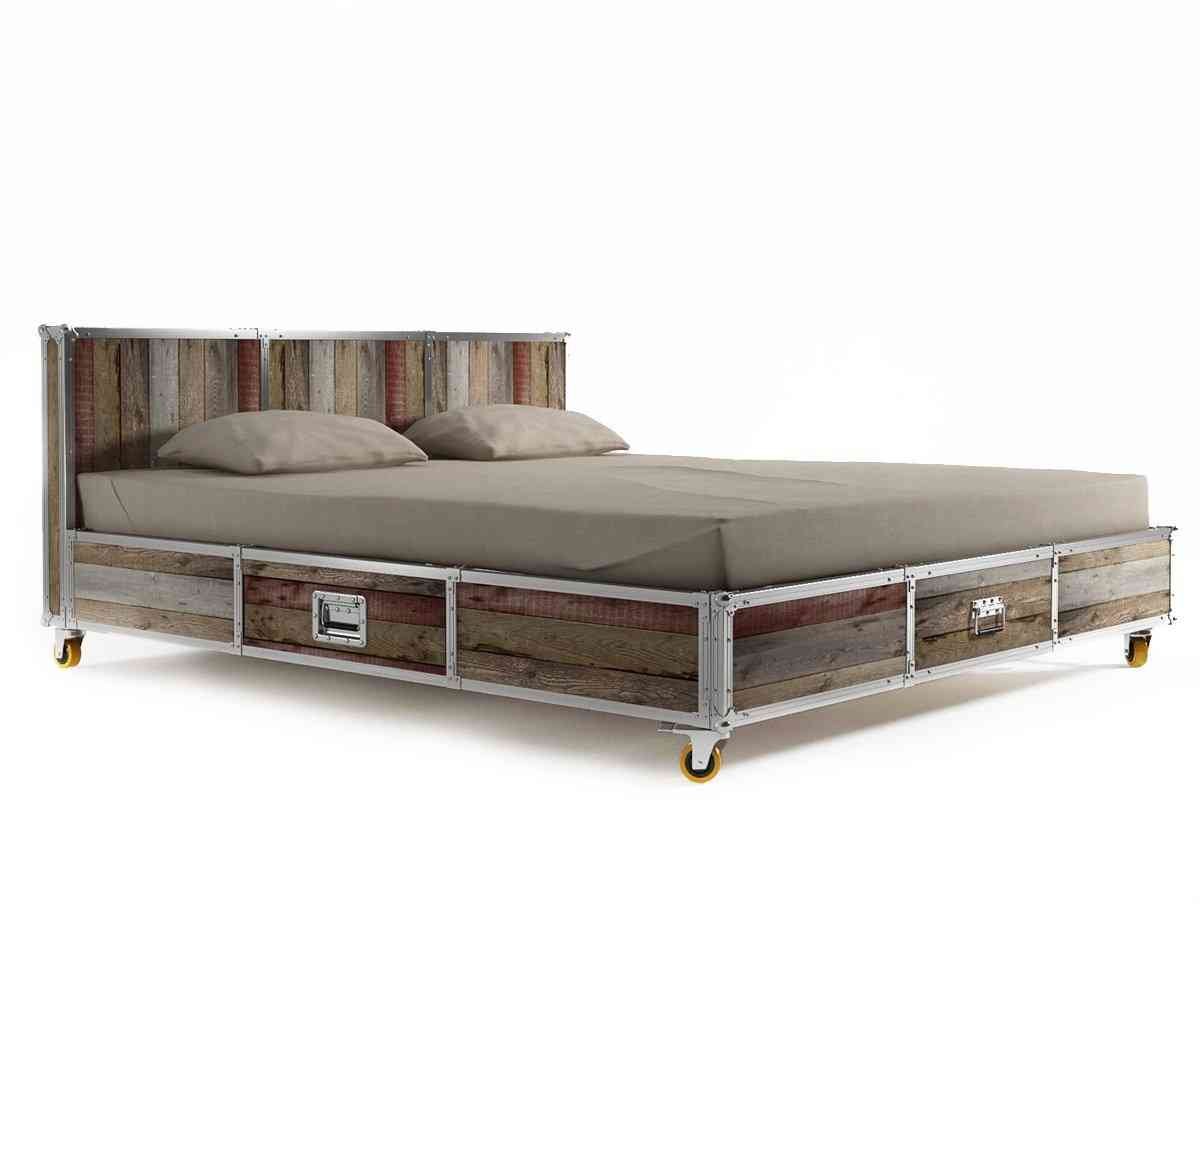 Attractive fantastic king size bed frame with drawers, industrial style wood and iron king wnsoatk